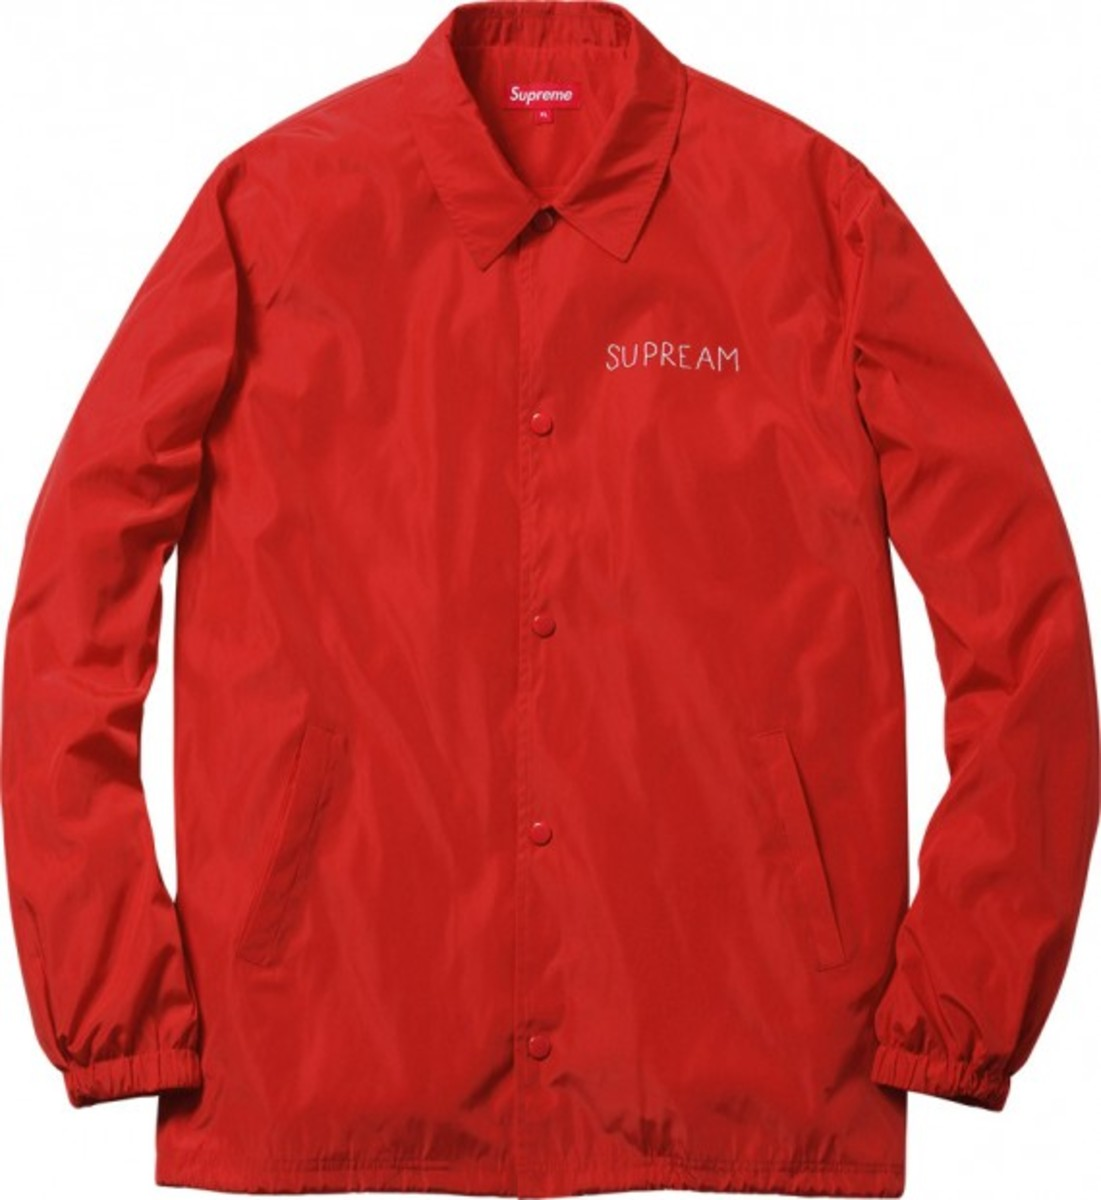 supreme-spring-summer-2013-outerwear-collection-24